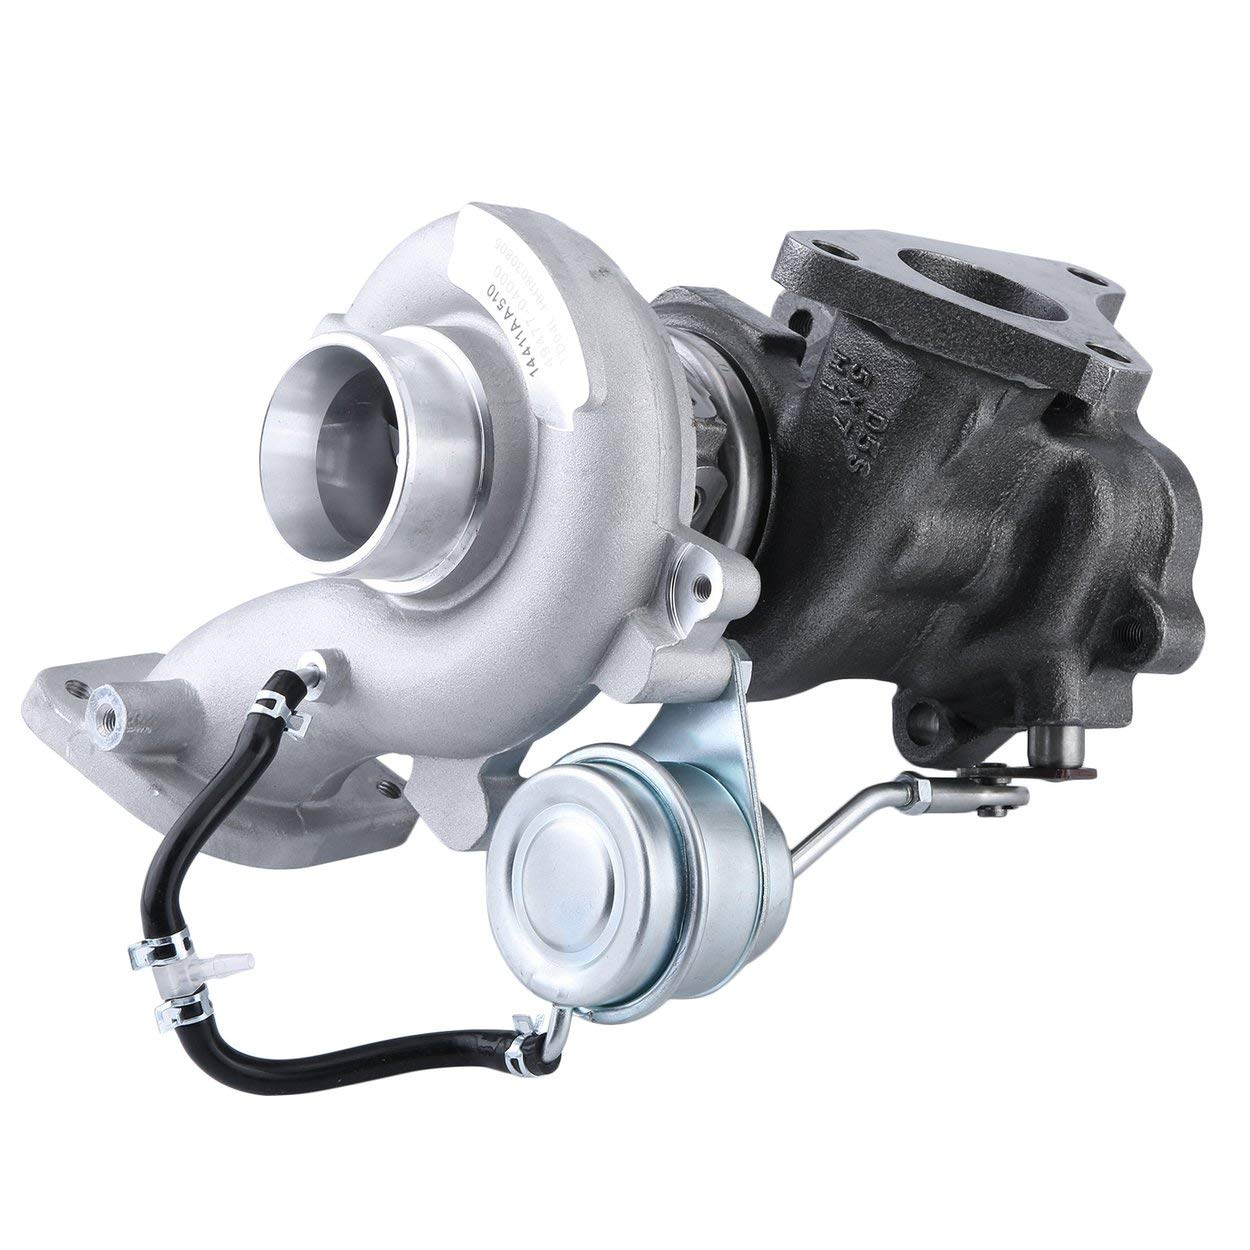 Turbo Charger For Subaru For Legacy-GT For Outback-XT 2005-09 Car Turbocharger 14411AA510 Automobile Turbo Supercharger